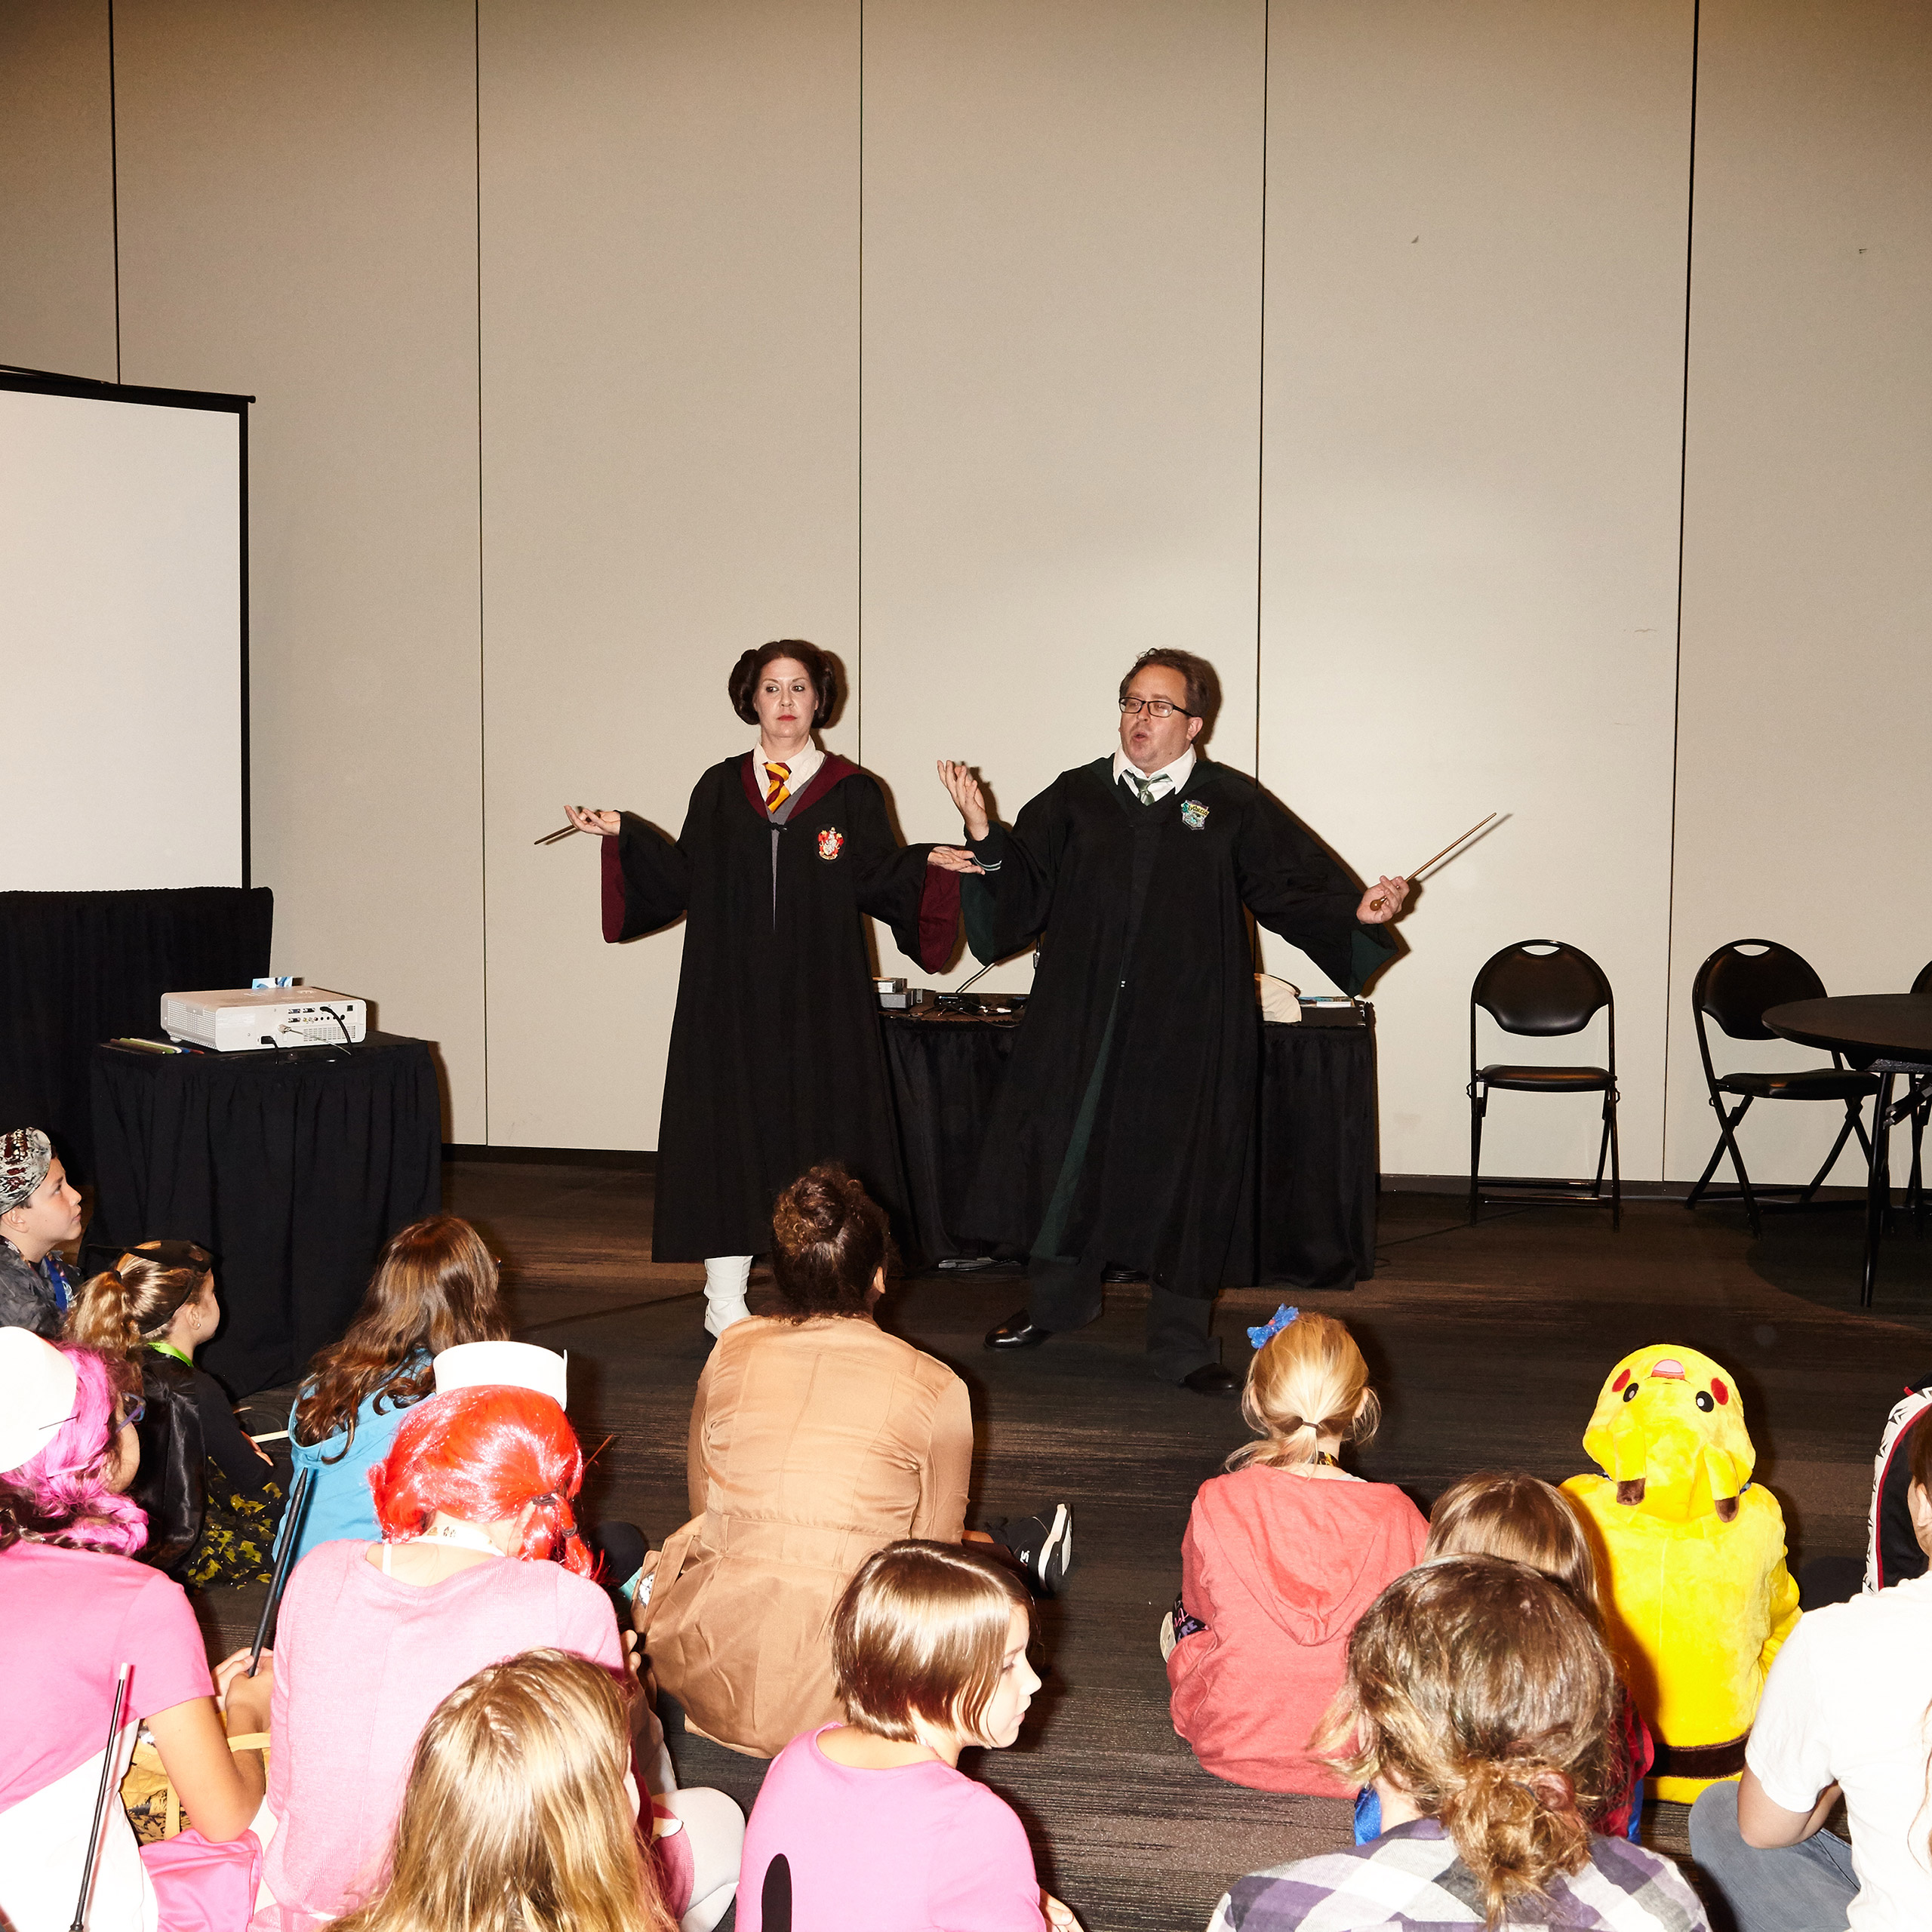 Wand dualing workshop for kids at New York Comic con.